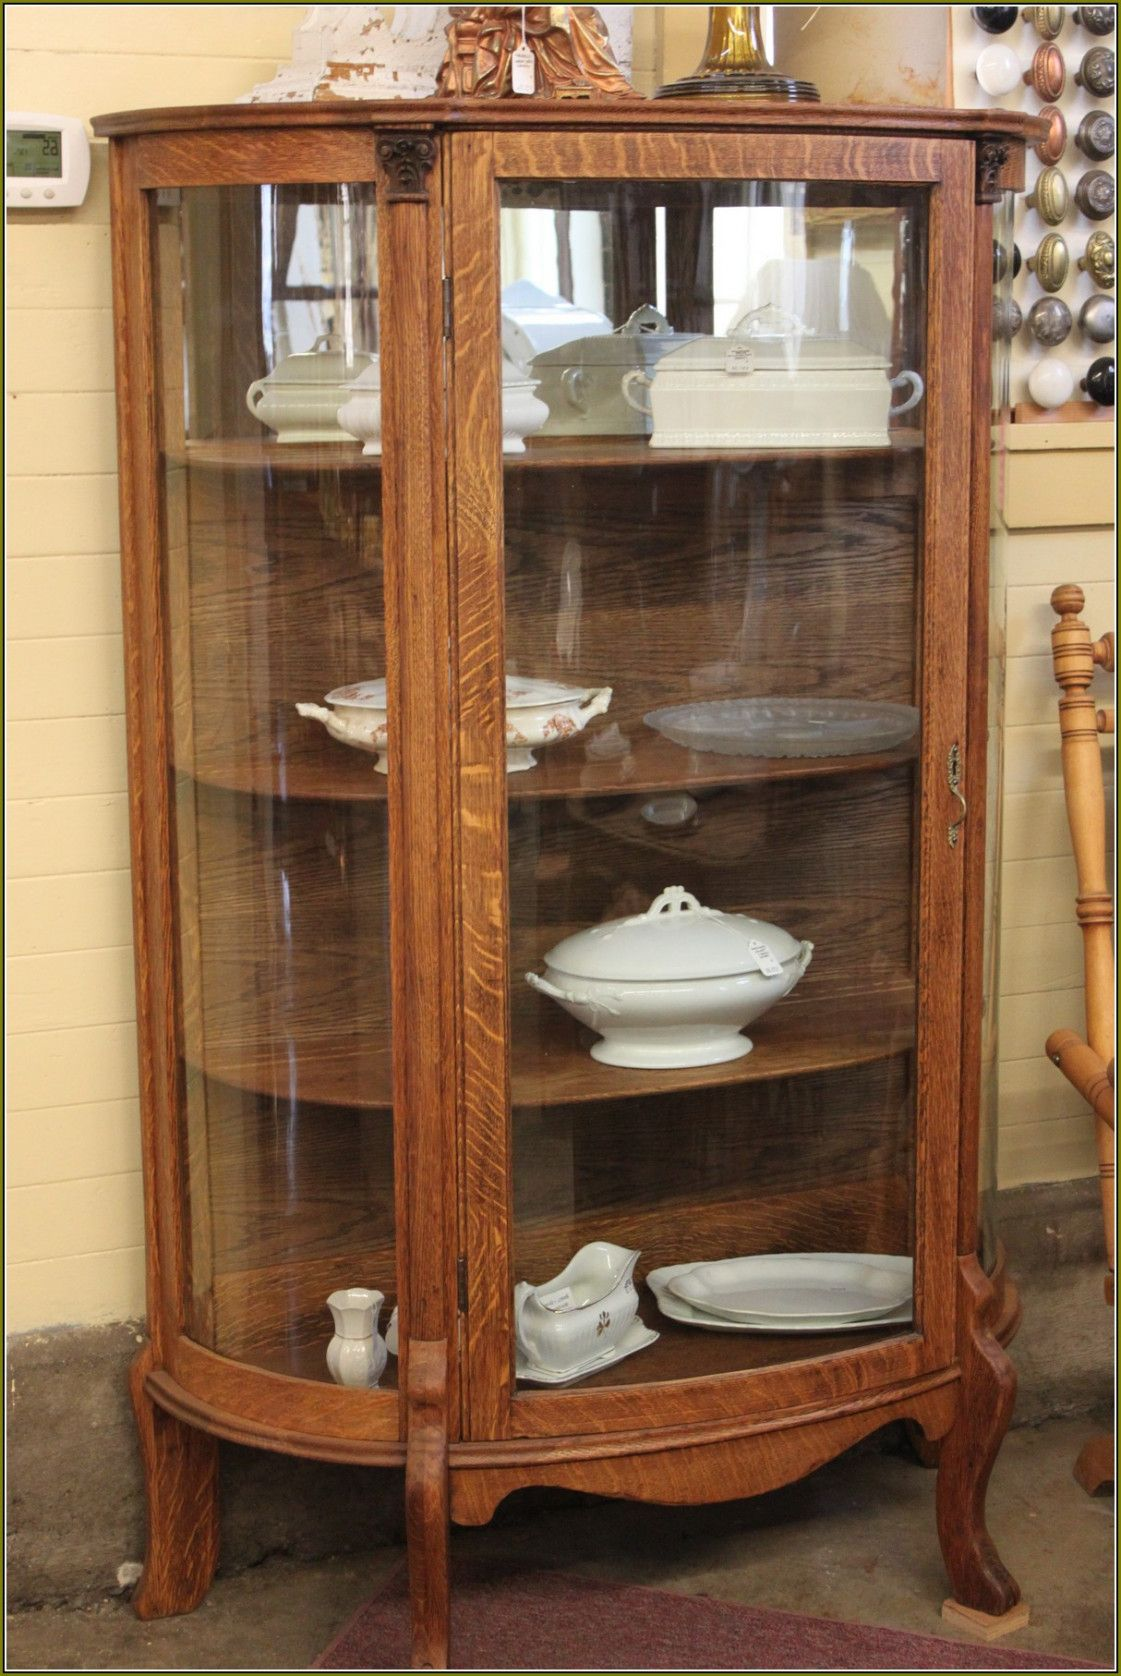 fittings used furniture classifieds uk glass display cabinet for second household hand cabinets sale